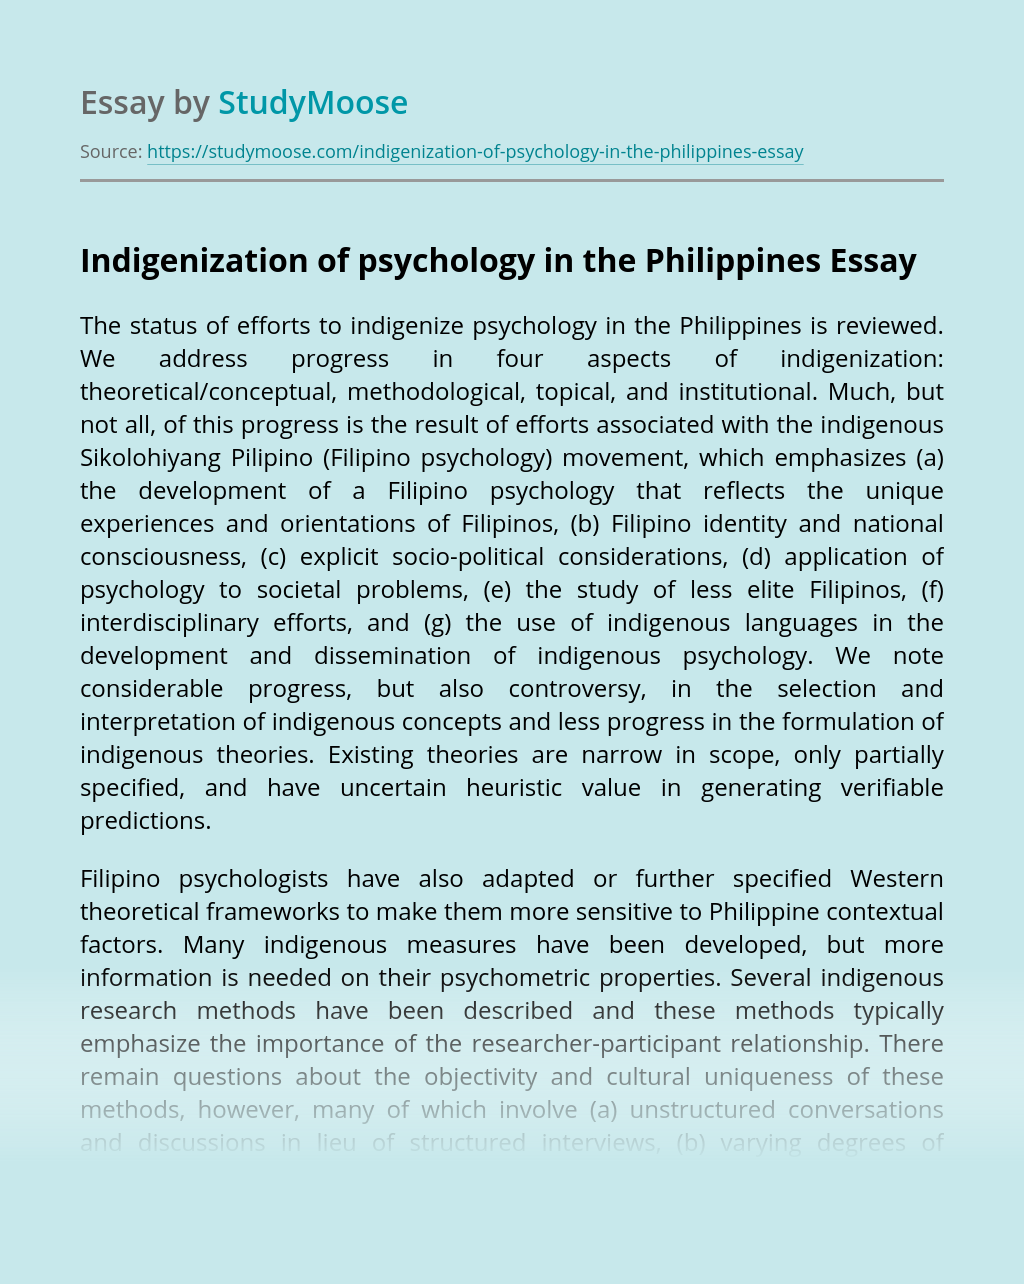 Indigenization of psychology in the Philippines